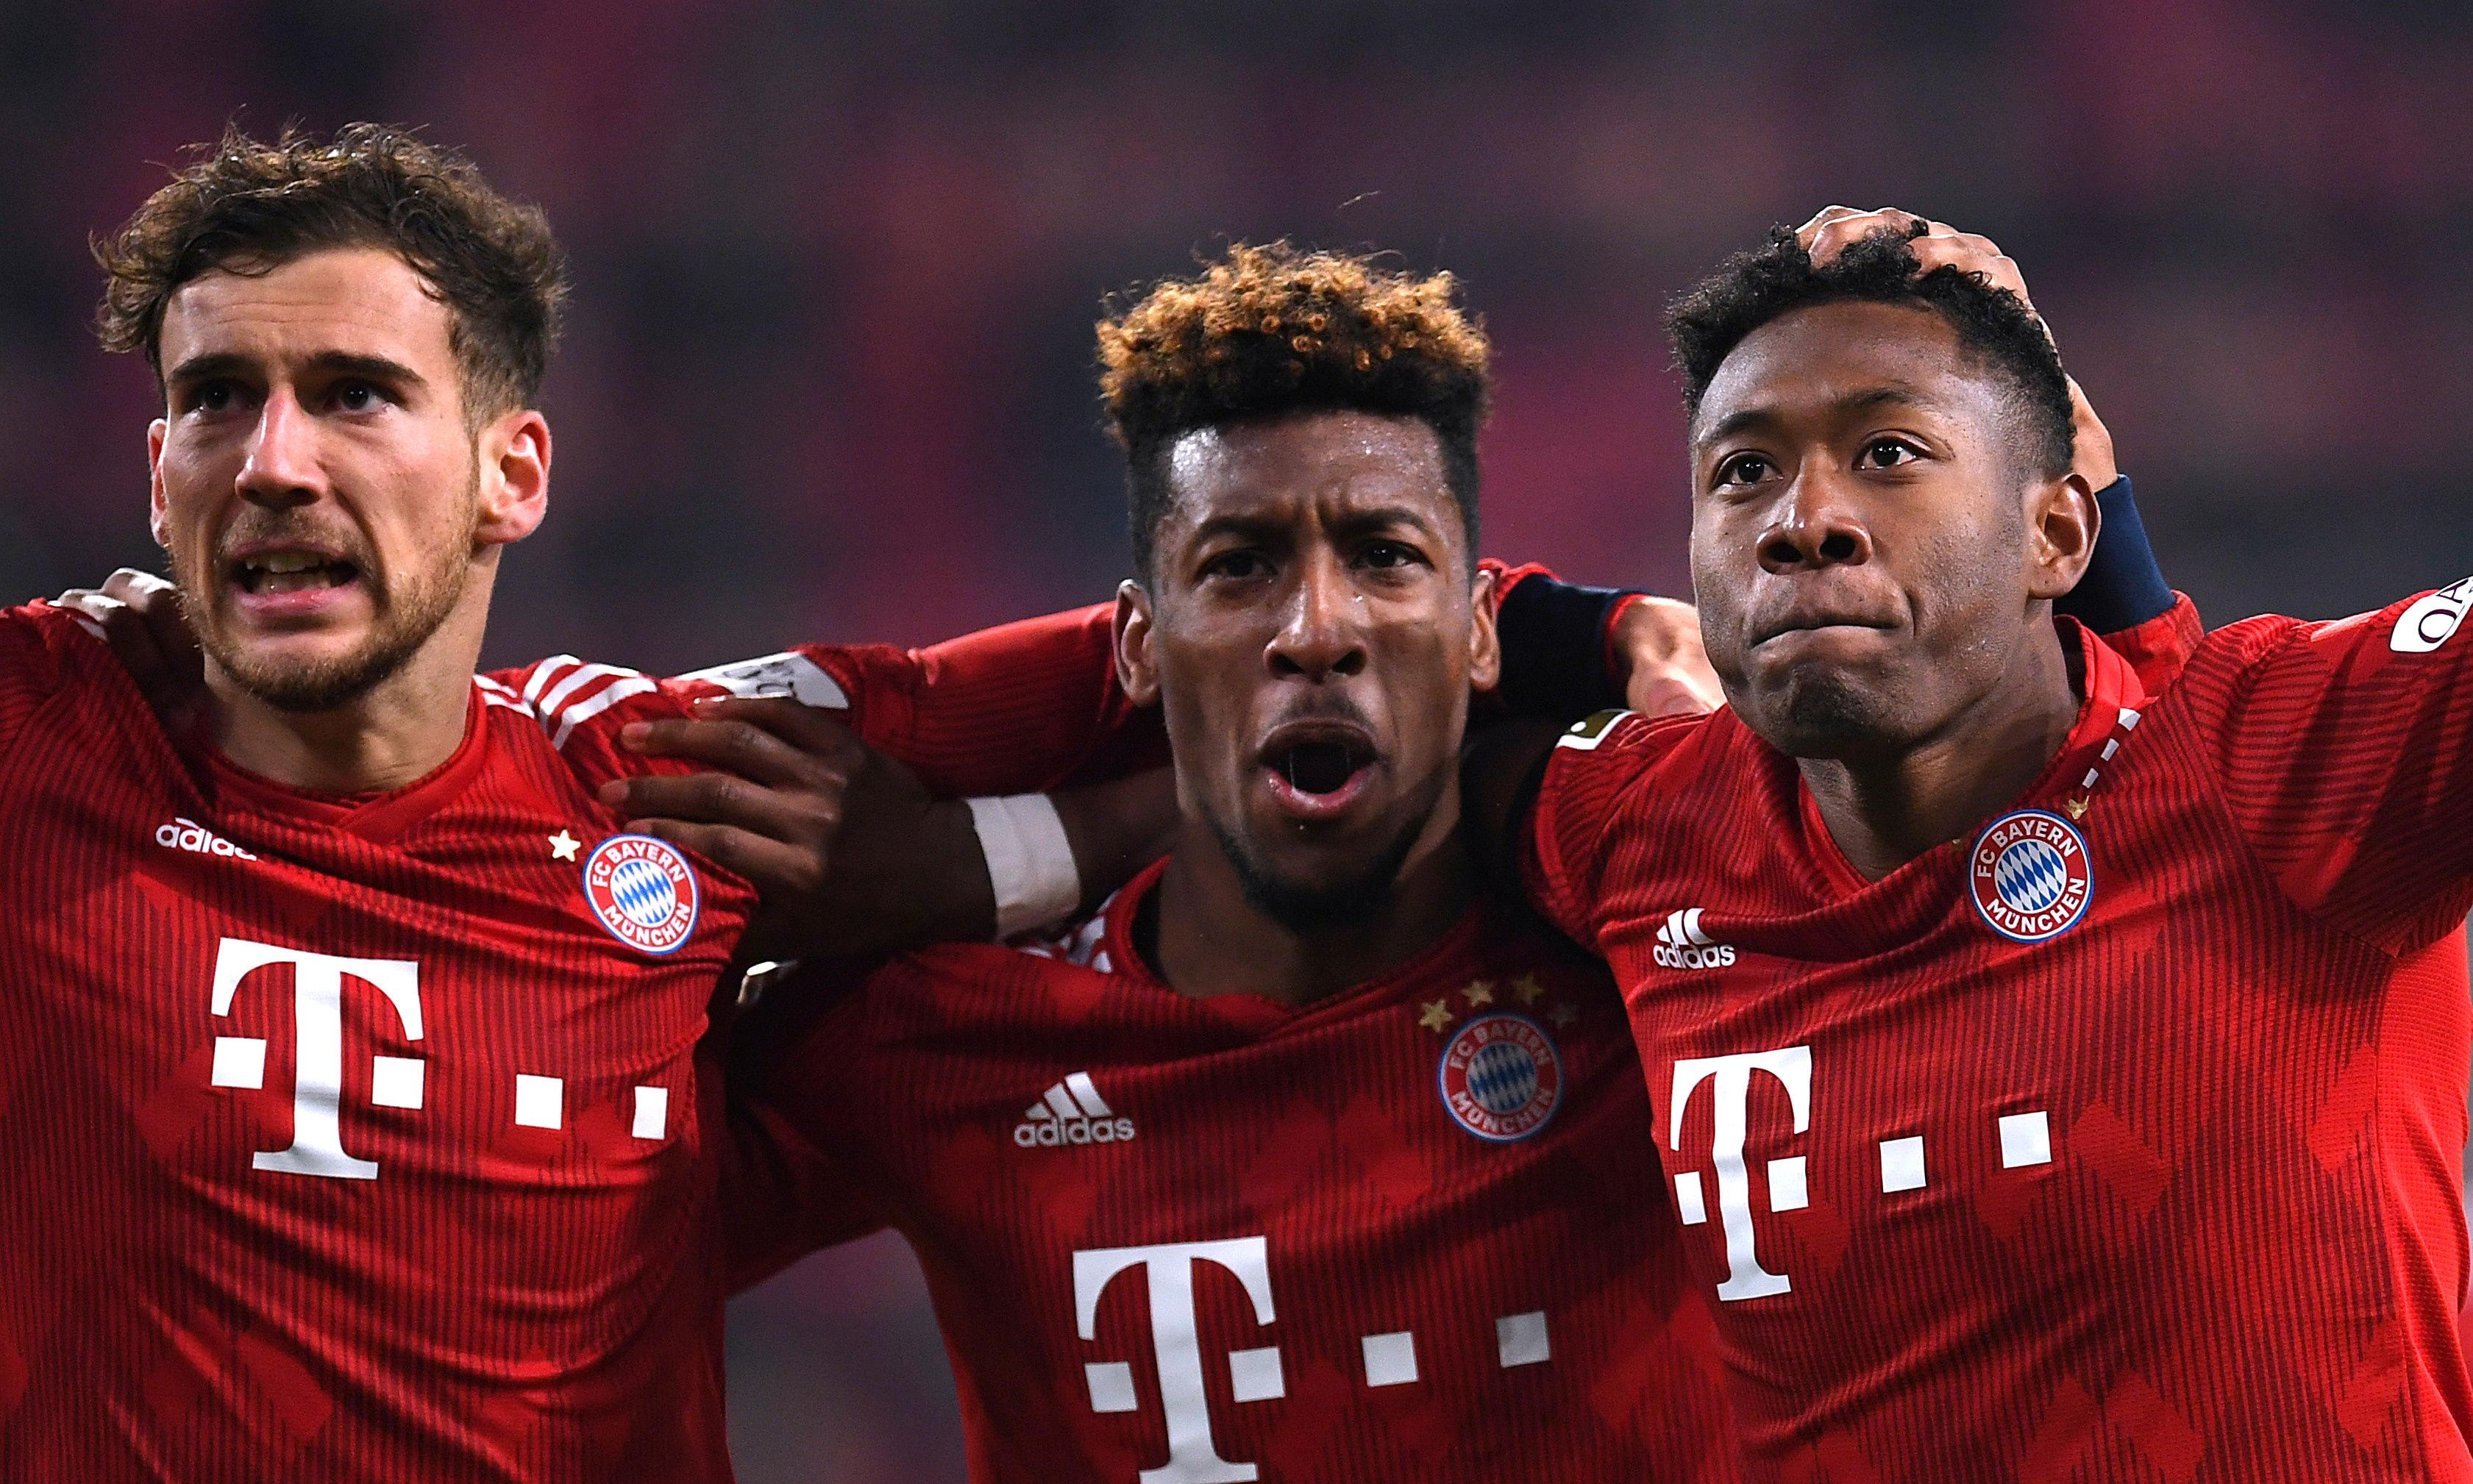 Bayern recover from 13-second own goal to beat Augsburg and close gap at top